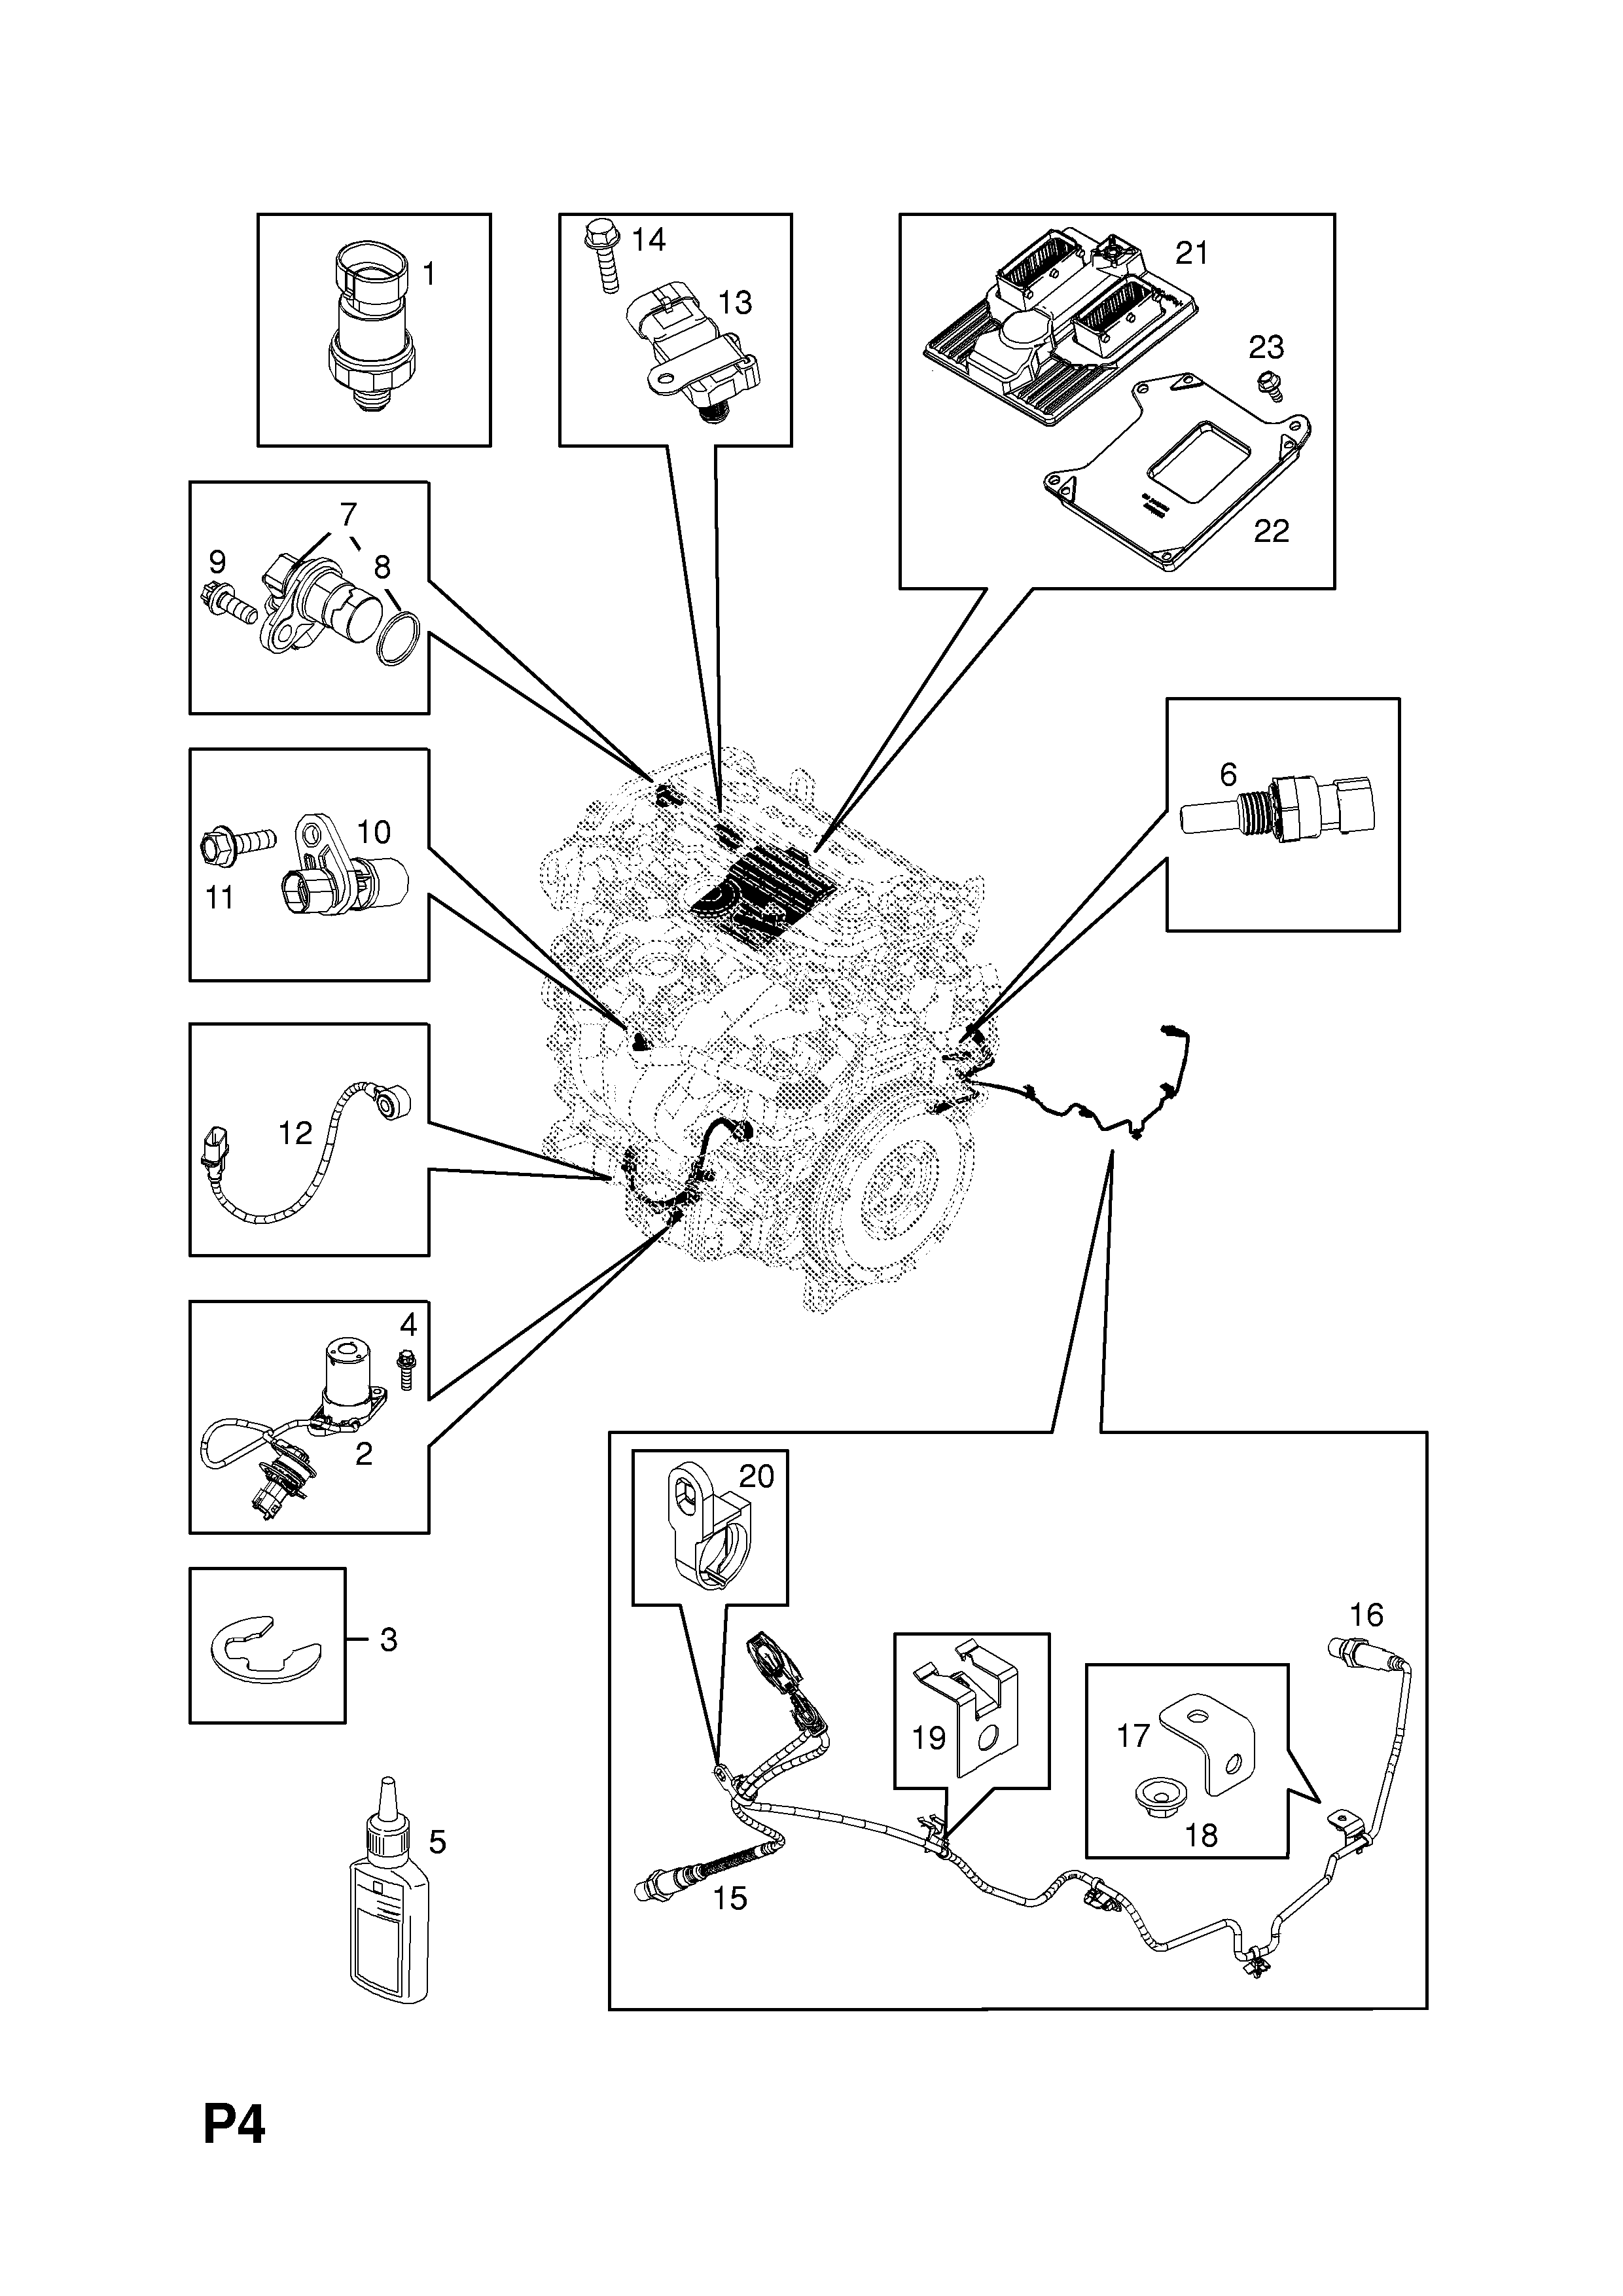 Vauxhall Zafira B 2005 P Electrical 1 Engine And Cooling Cruise Control Wiring Diagram